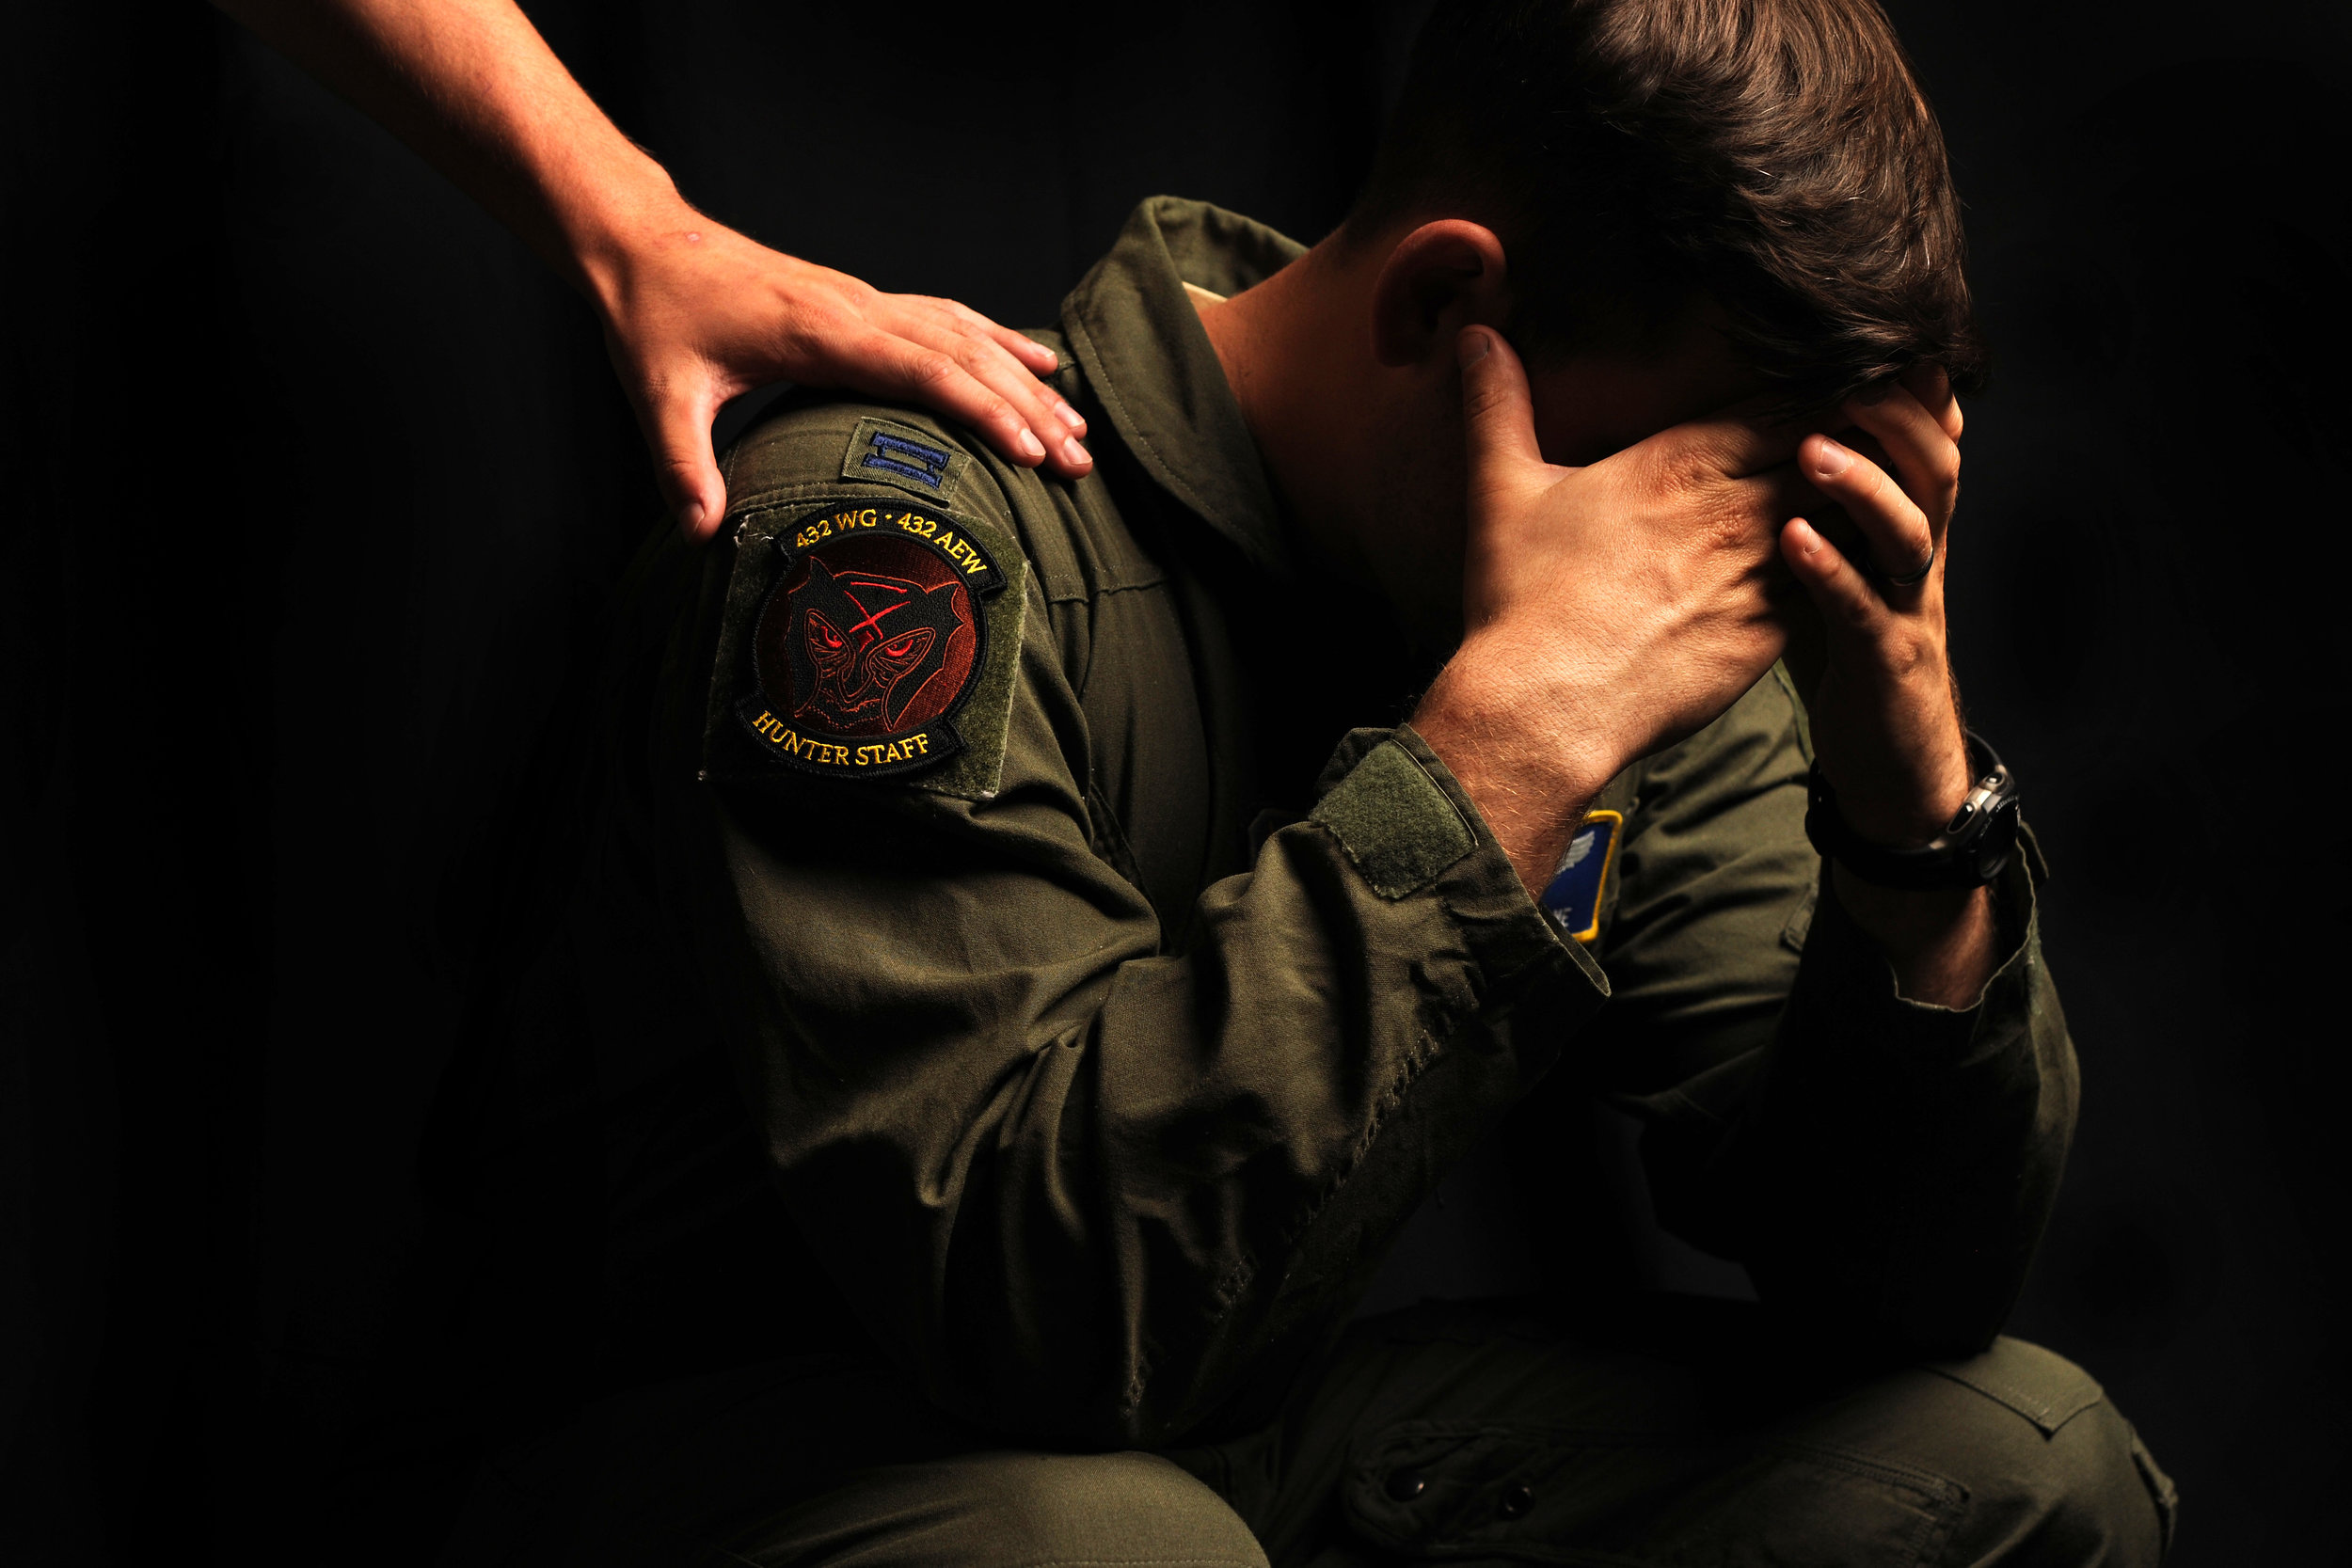 SEEK PROFESSIONAL TREATMENT - It's Never Too Late to Get Treatment or Alternative Therapy for PTSD.